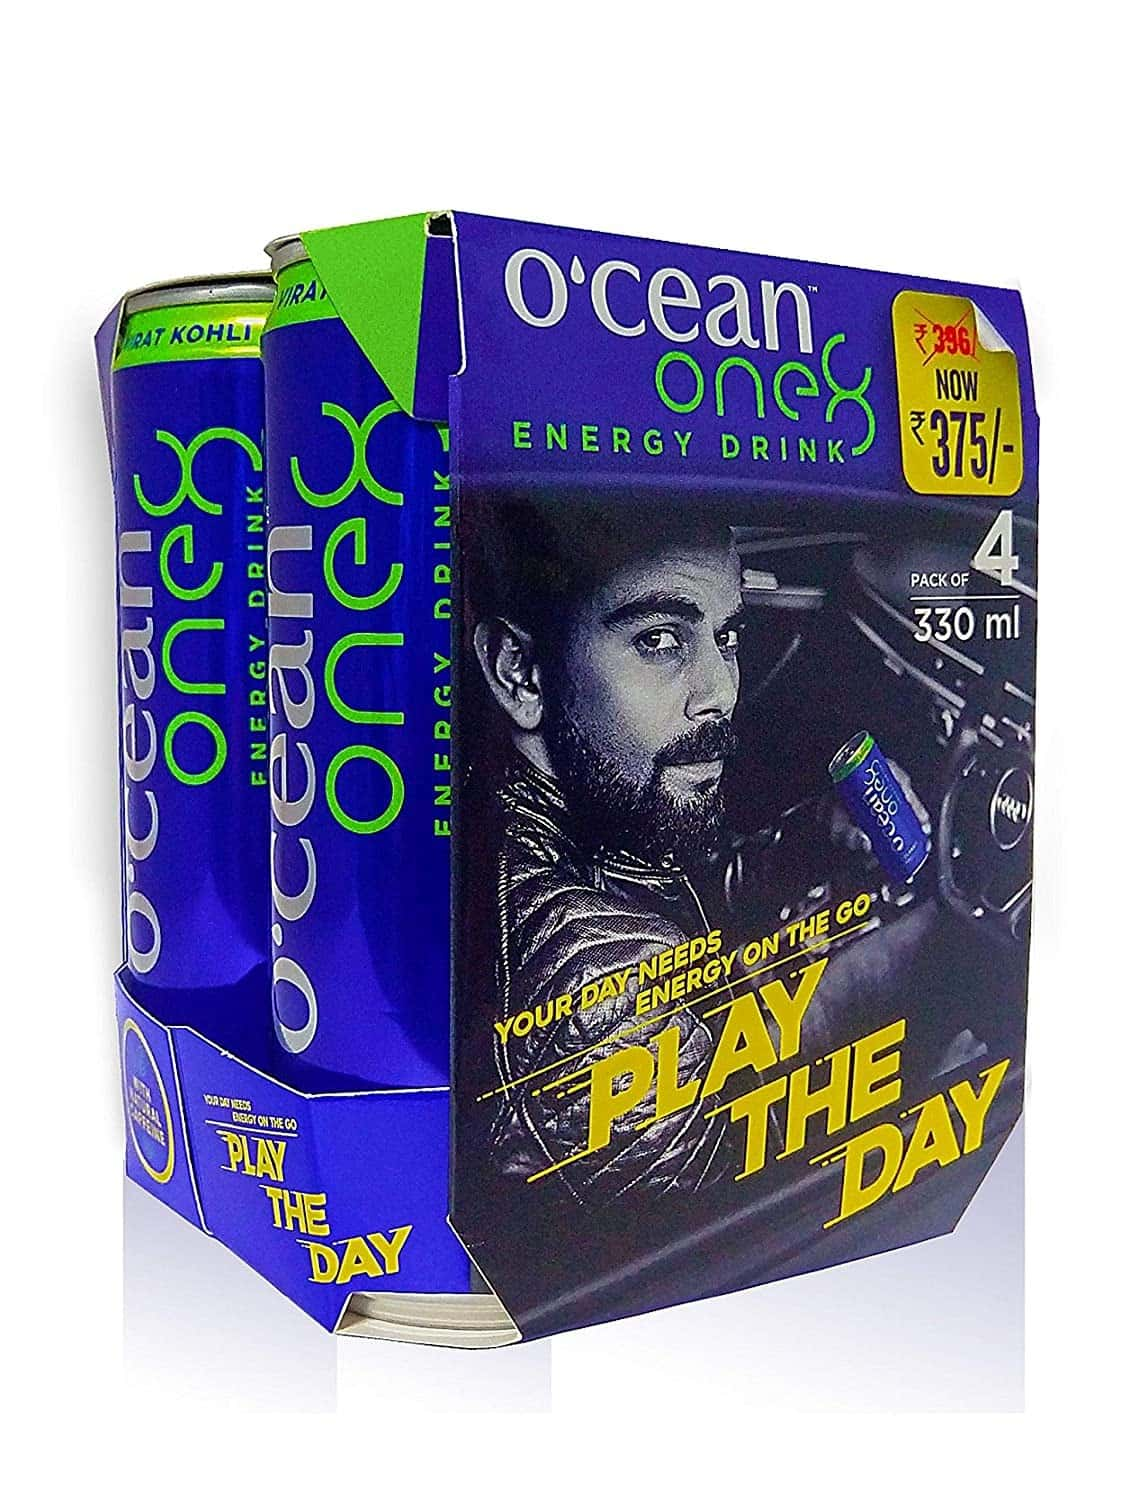 O'cean Natural Energy Drink With Natural Energy From Plant Based Caffeine & No Artificial Sweeteners. 330ml, Pack Of 4